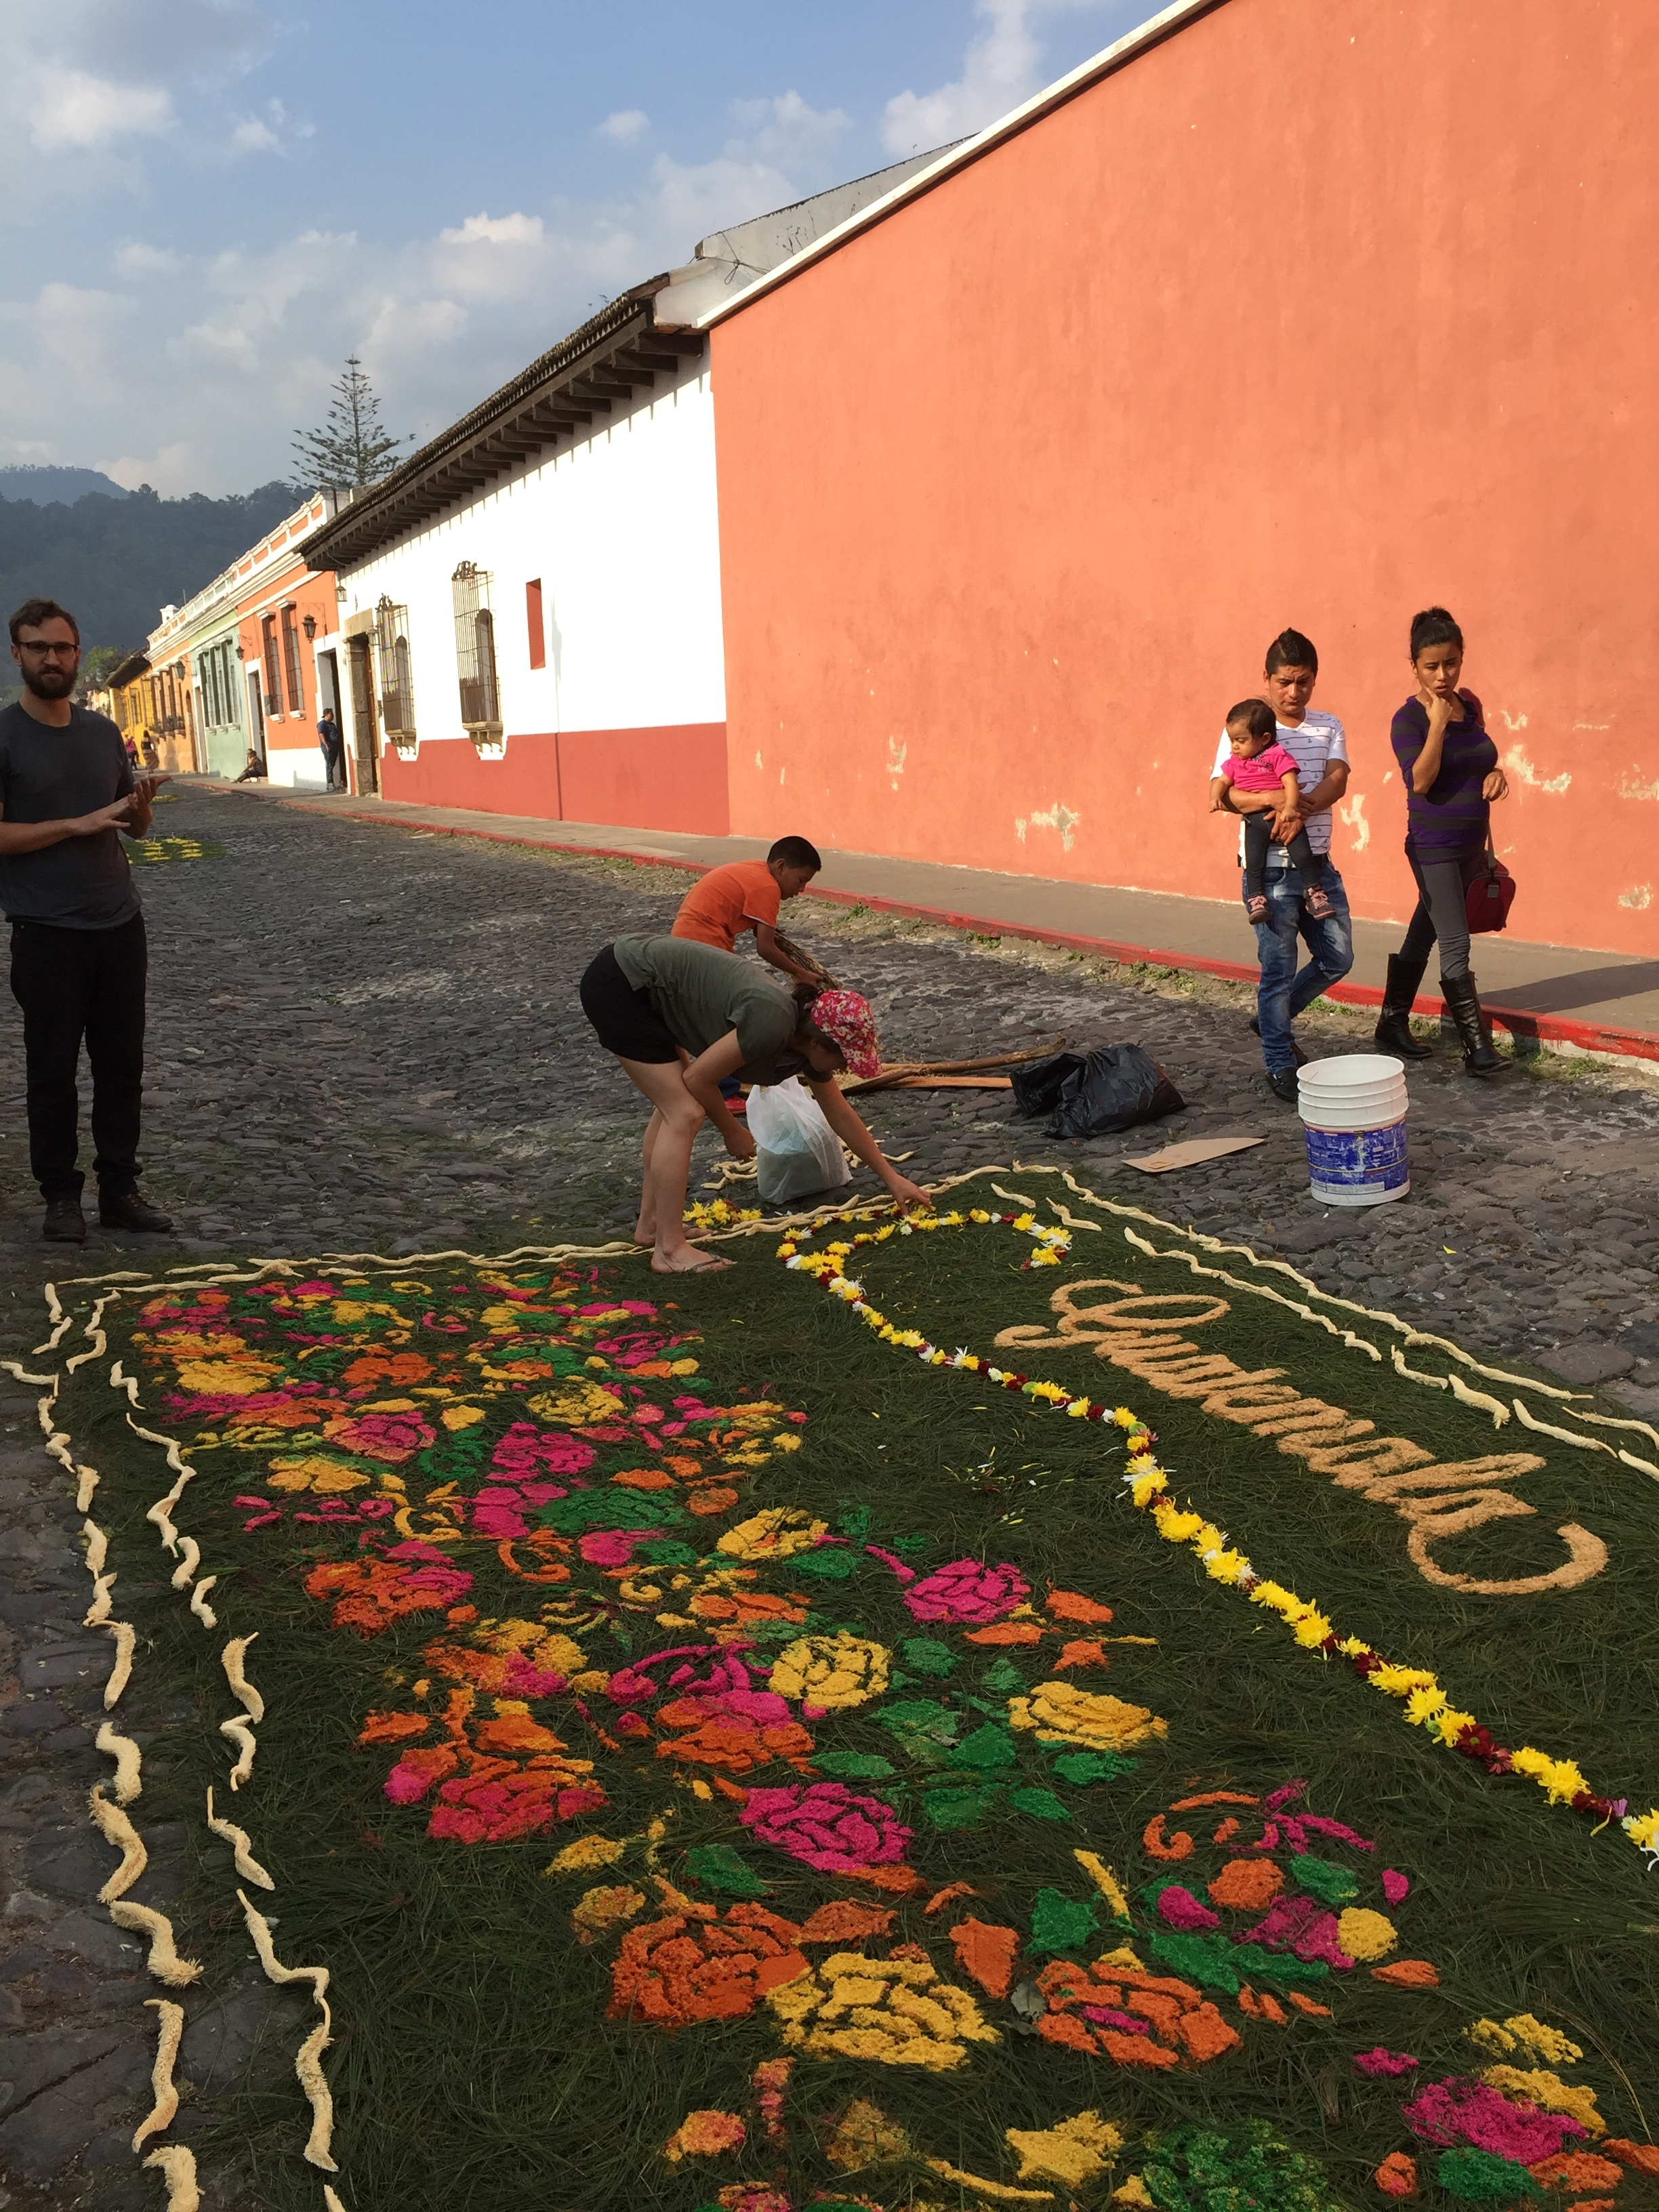 Locals join tourists in creating traditional sawdust carpets, which cover the sstreets of Antigua during the week before Easter.